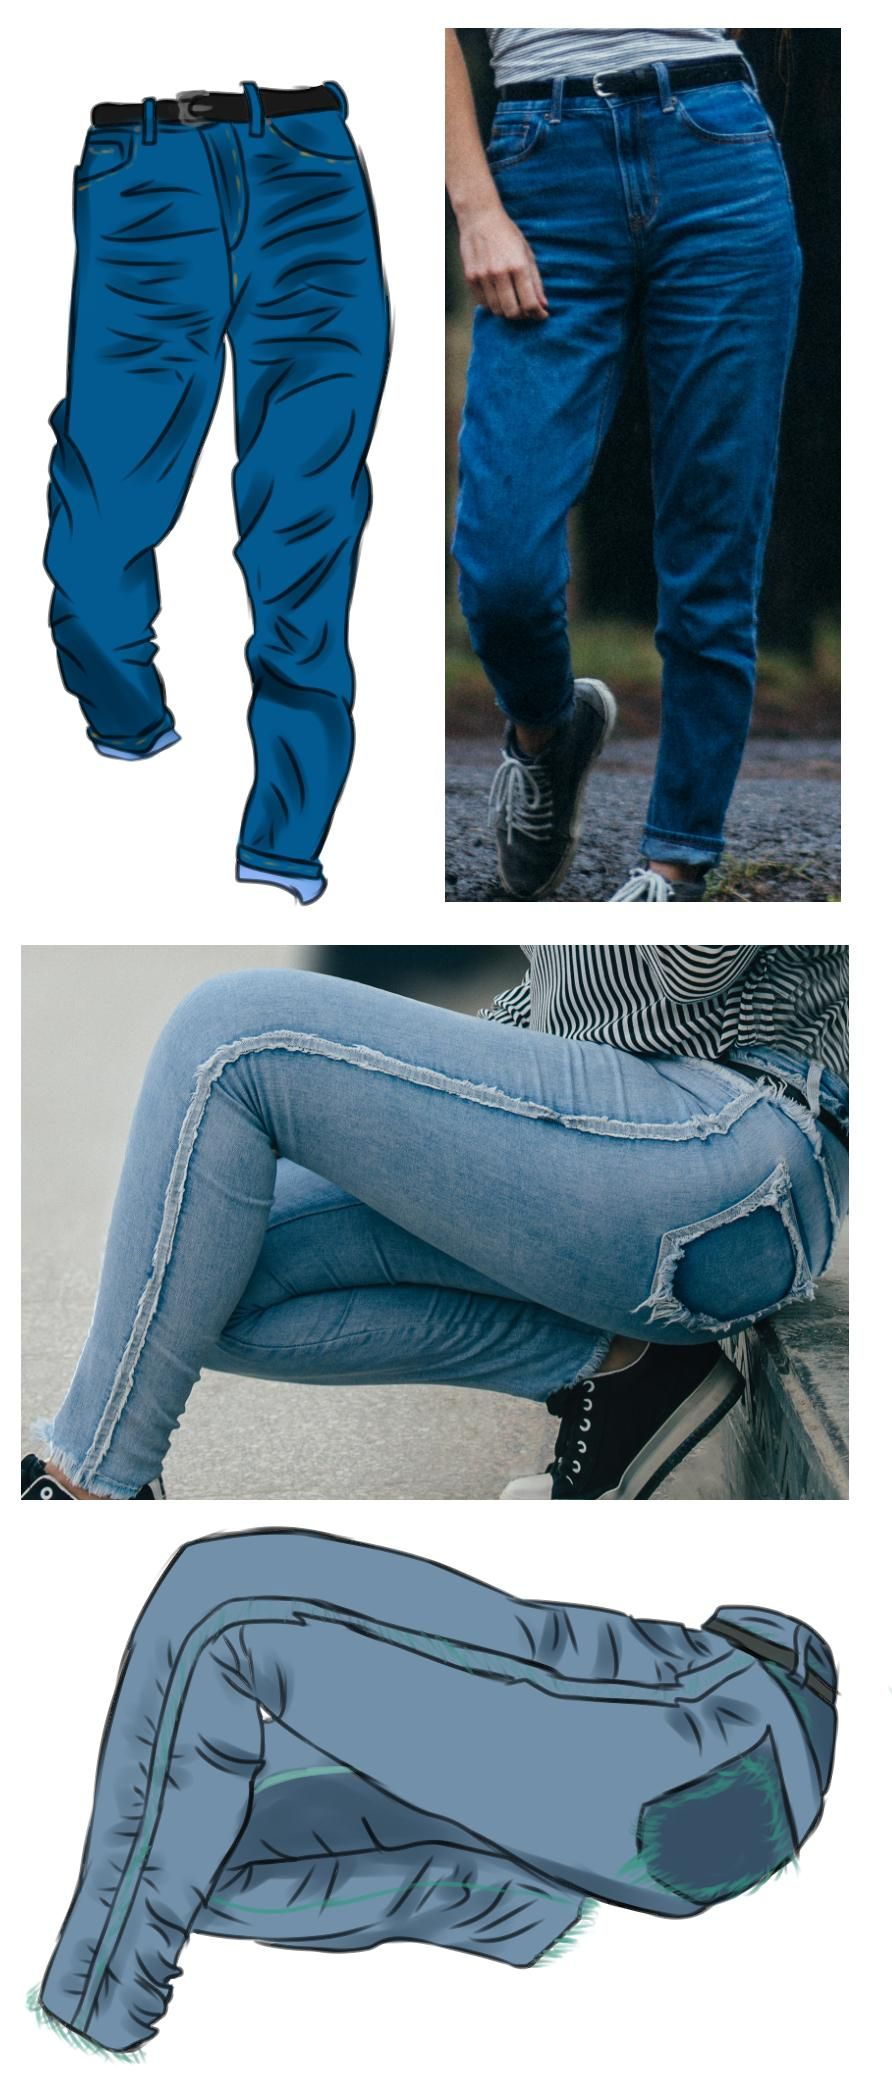 Some Jeans - image 3 - student project